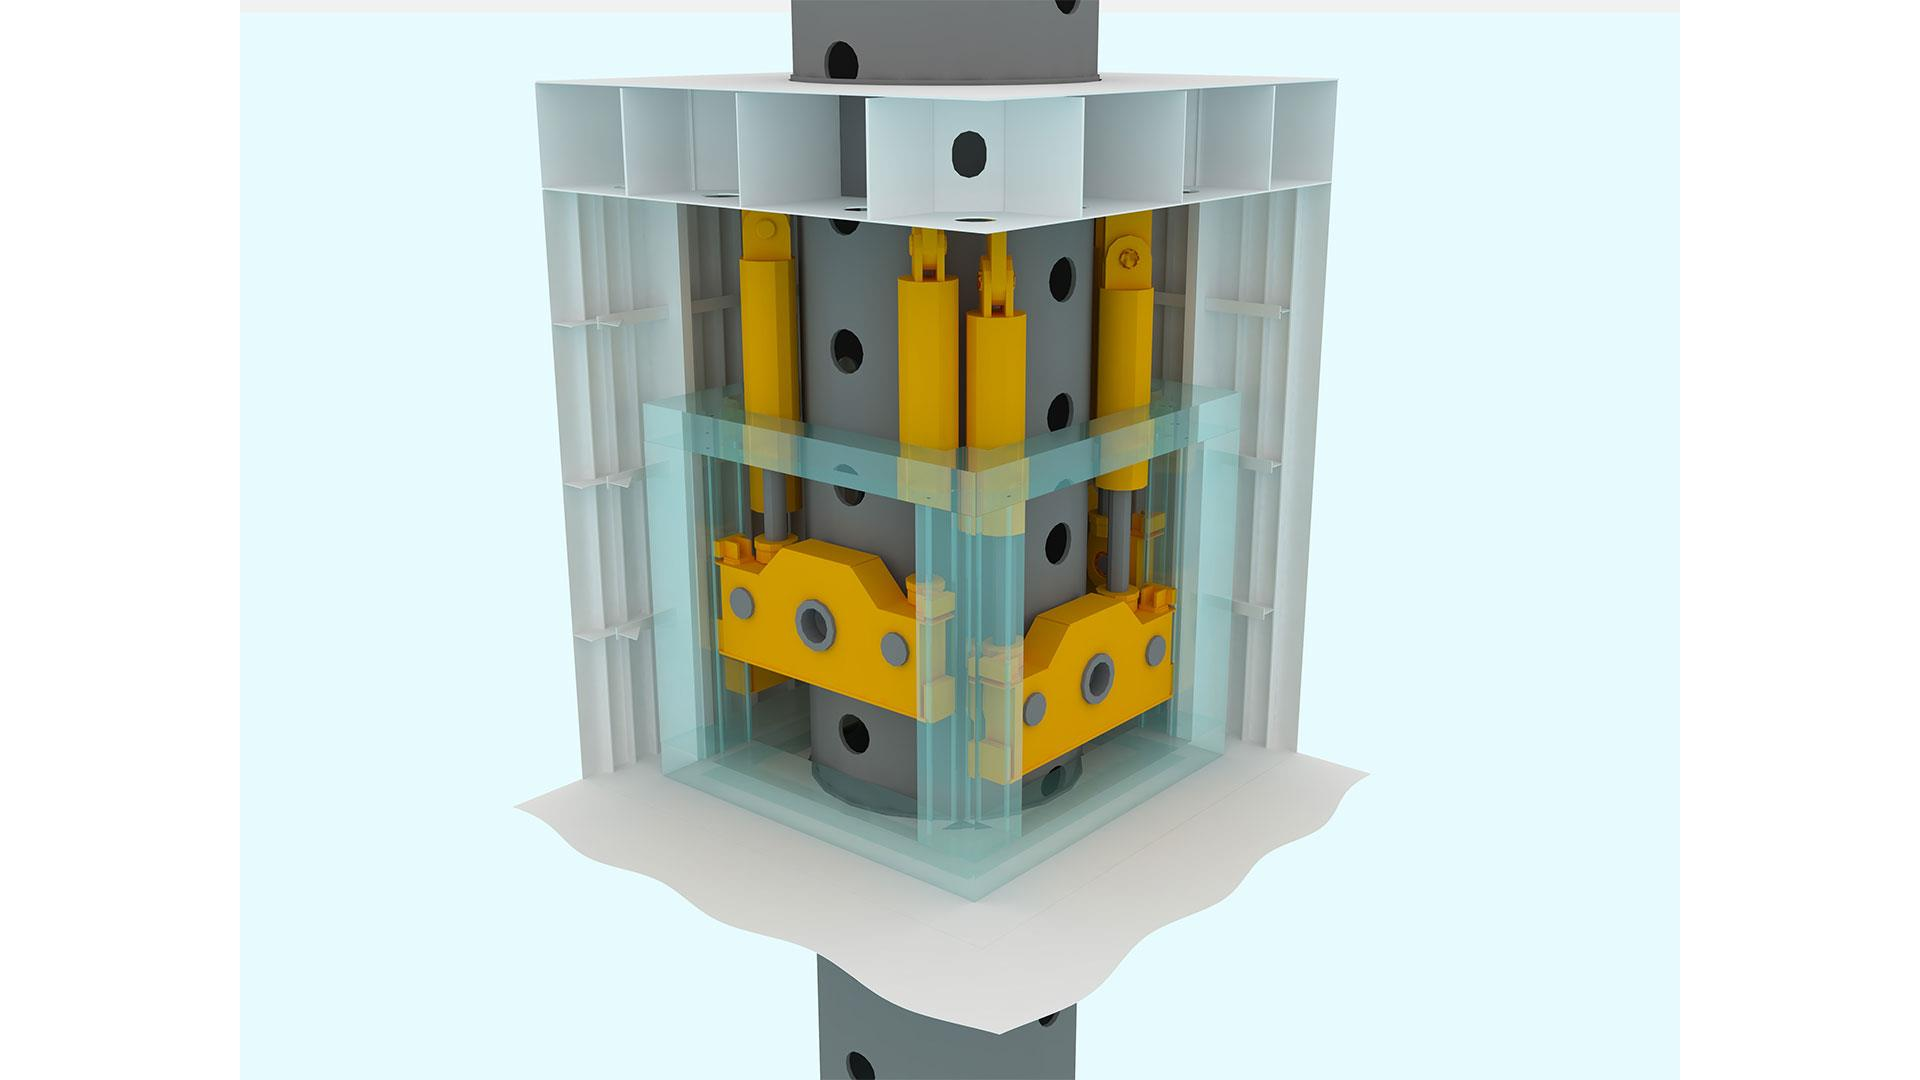 Continuous Hydraulic Jacking System Render